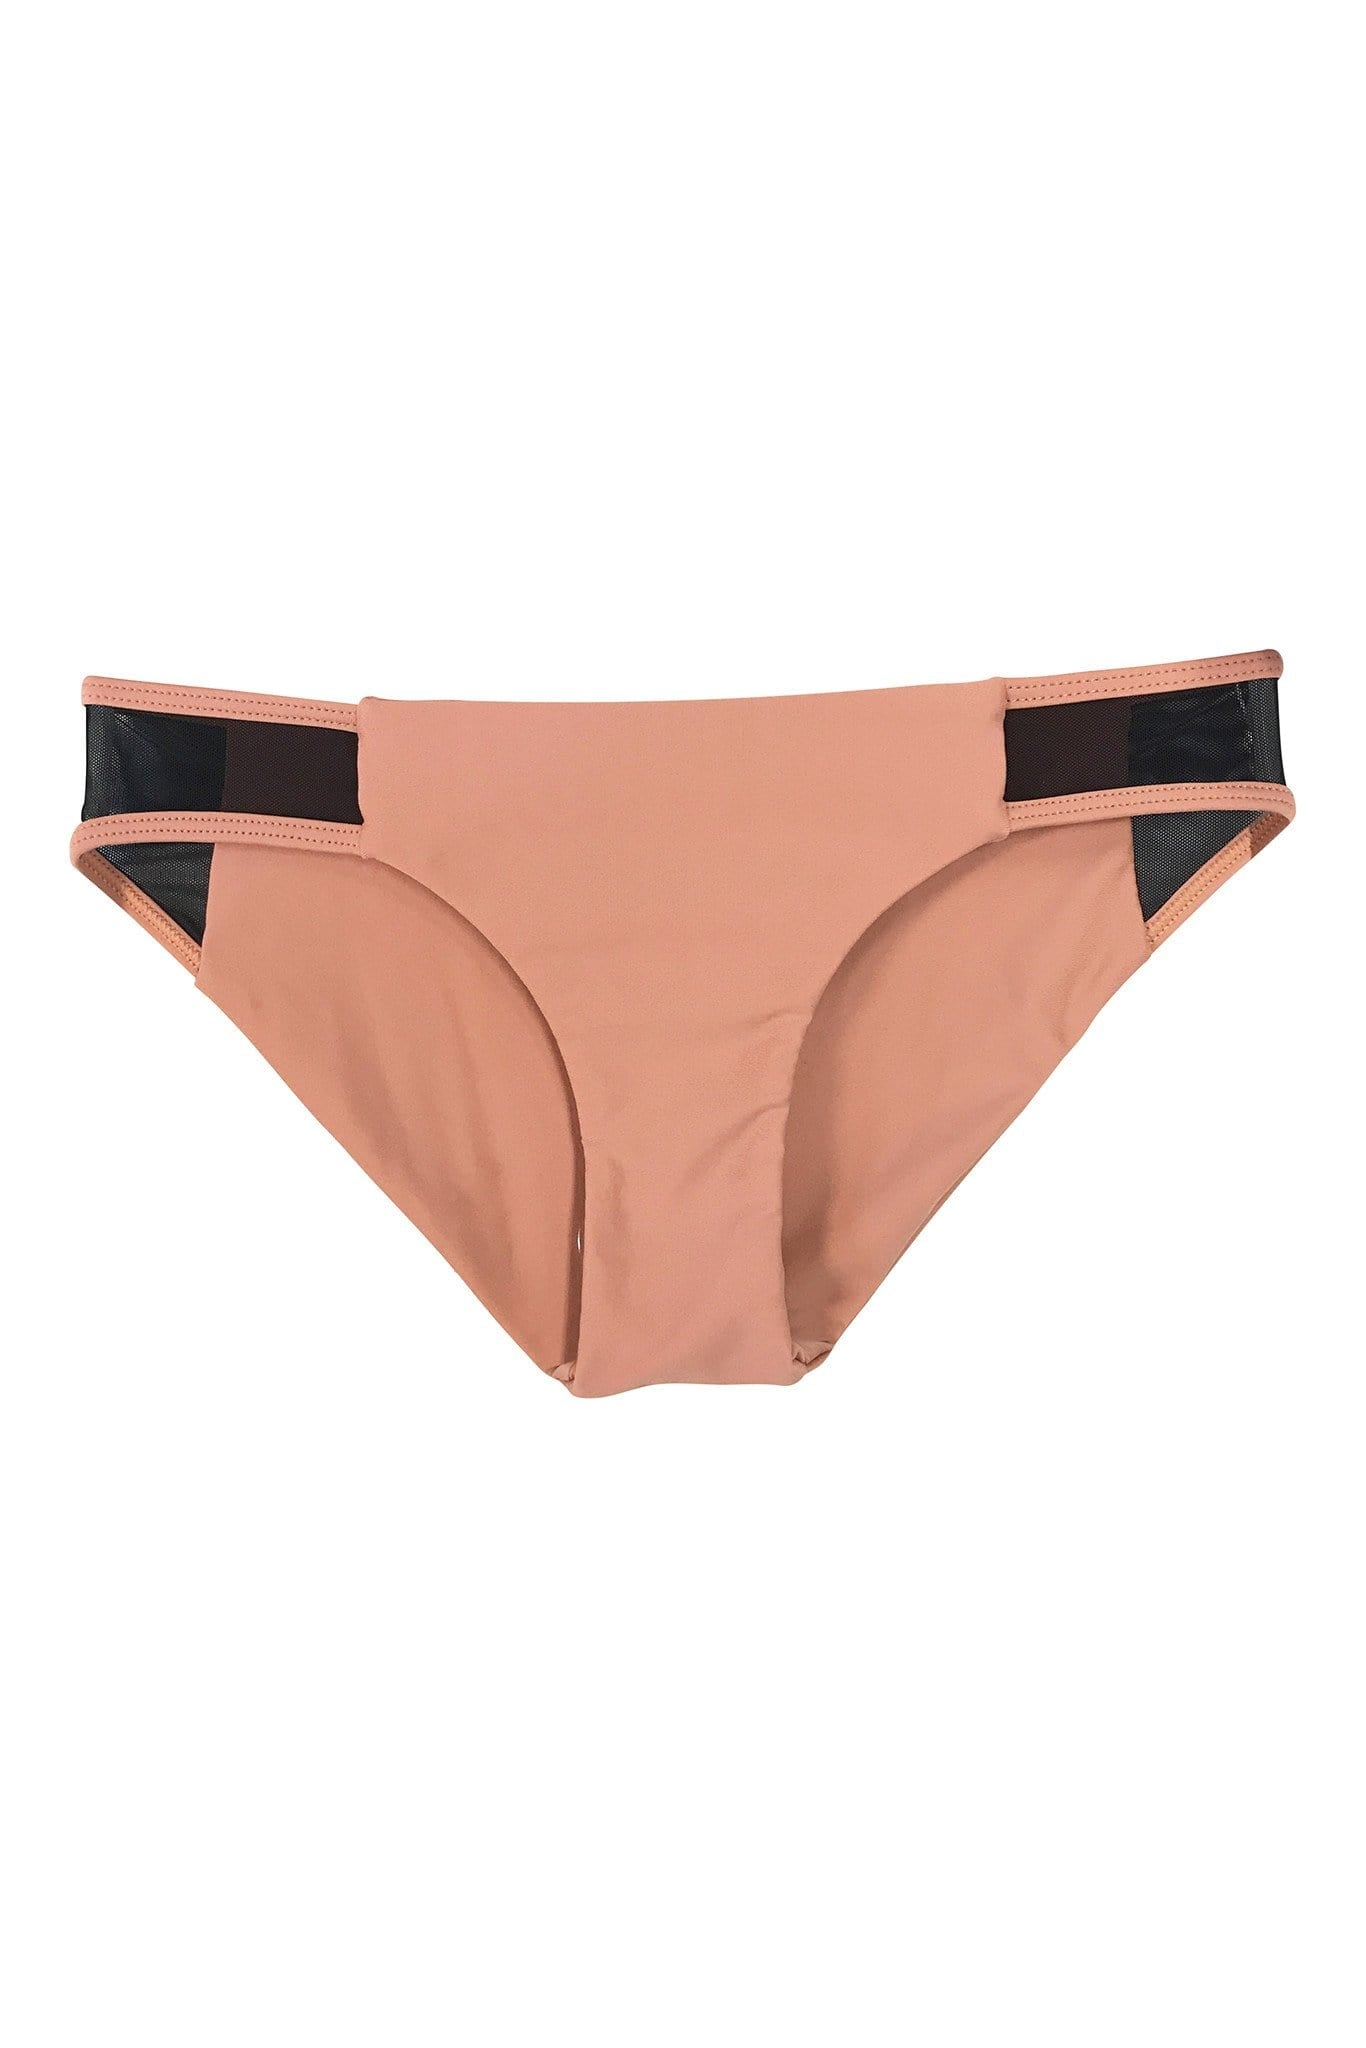 *SALE* Kaili Bottom Honey $75